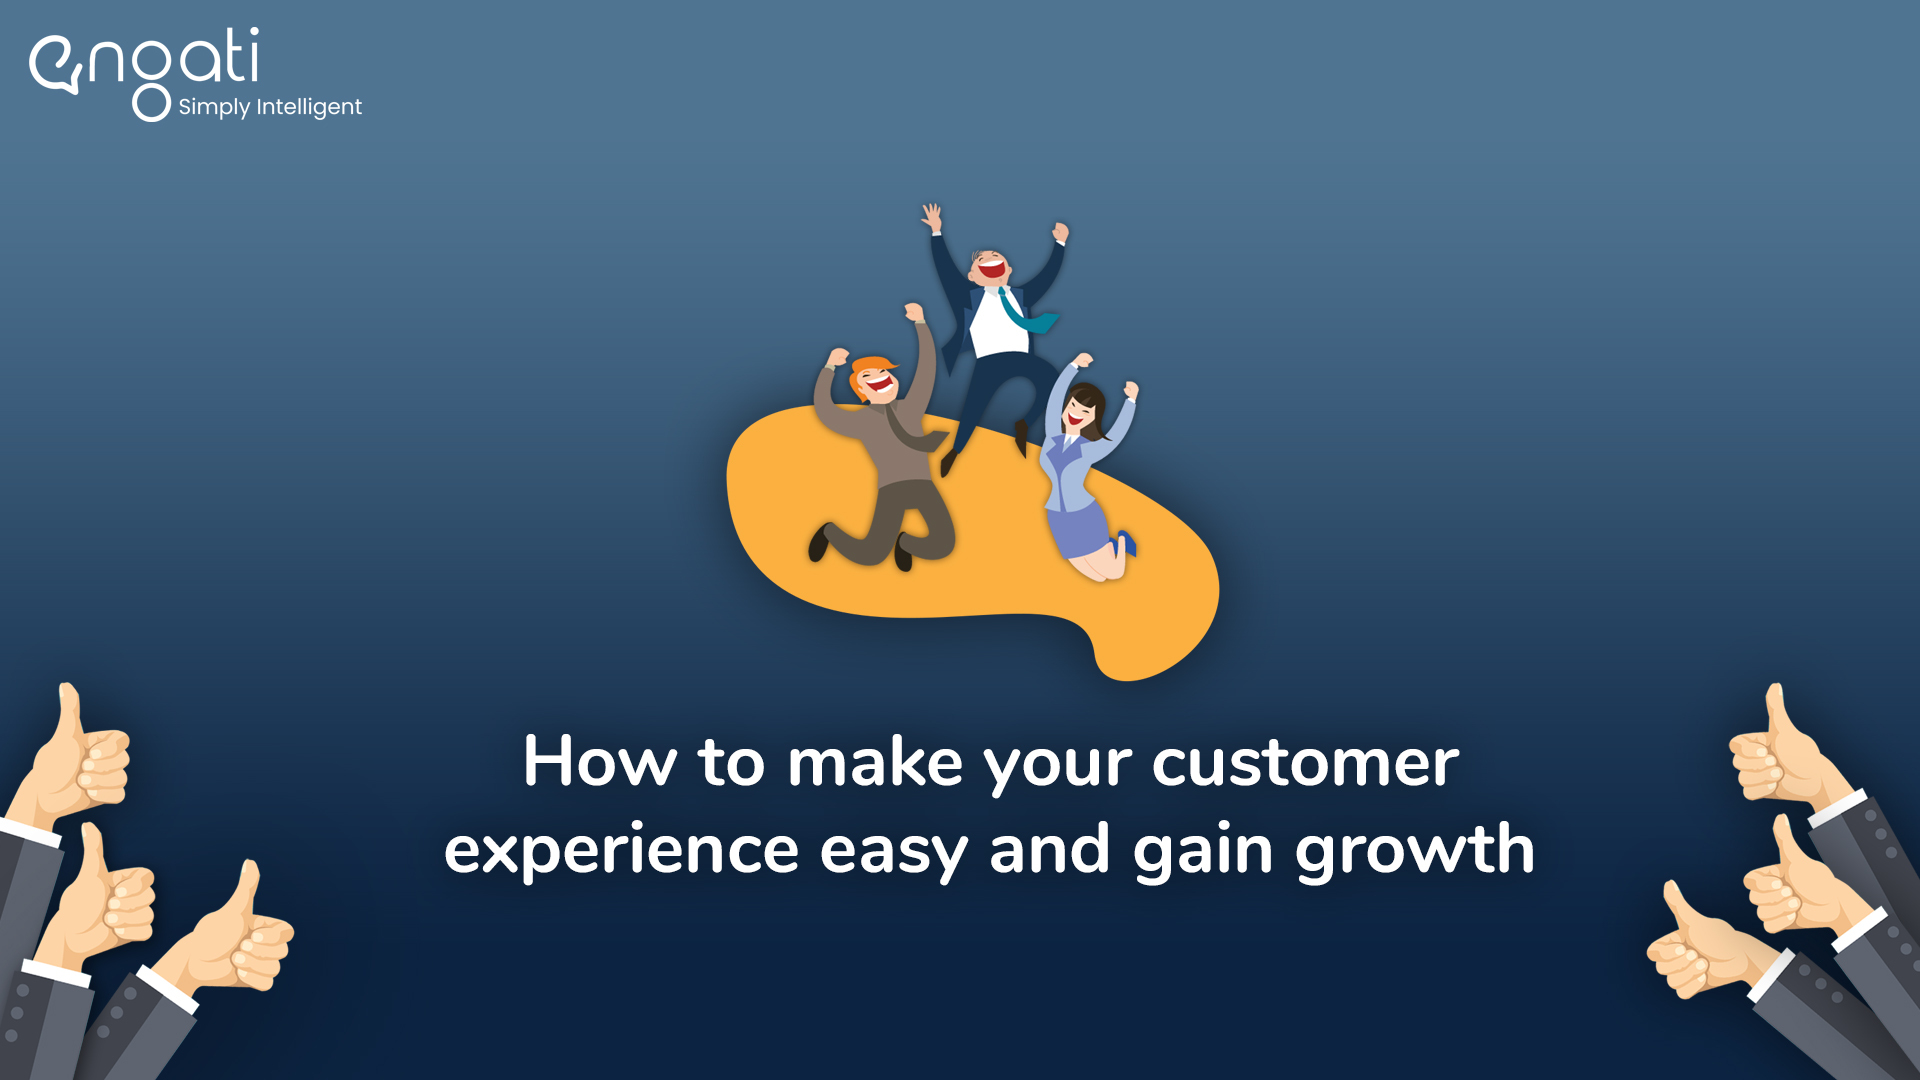 How to make your customer experience easy and gain growth